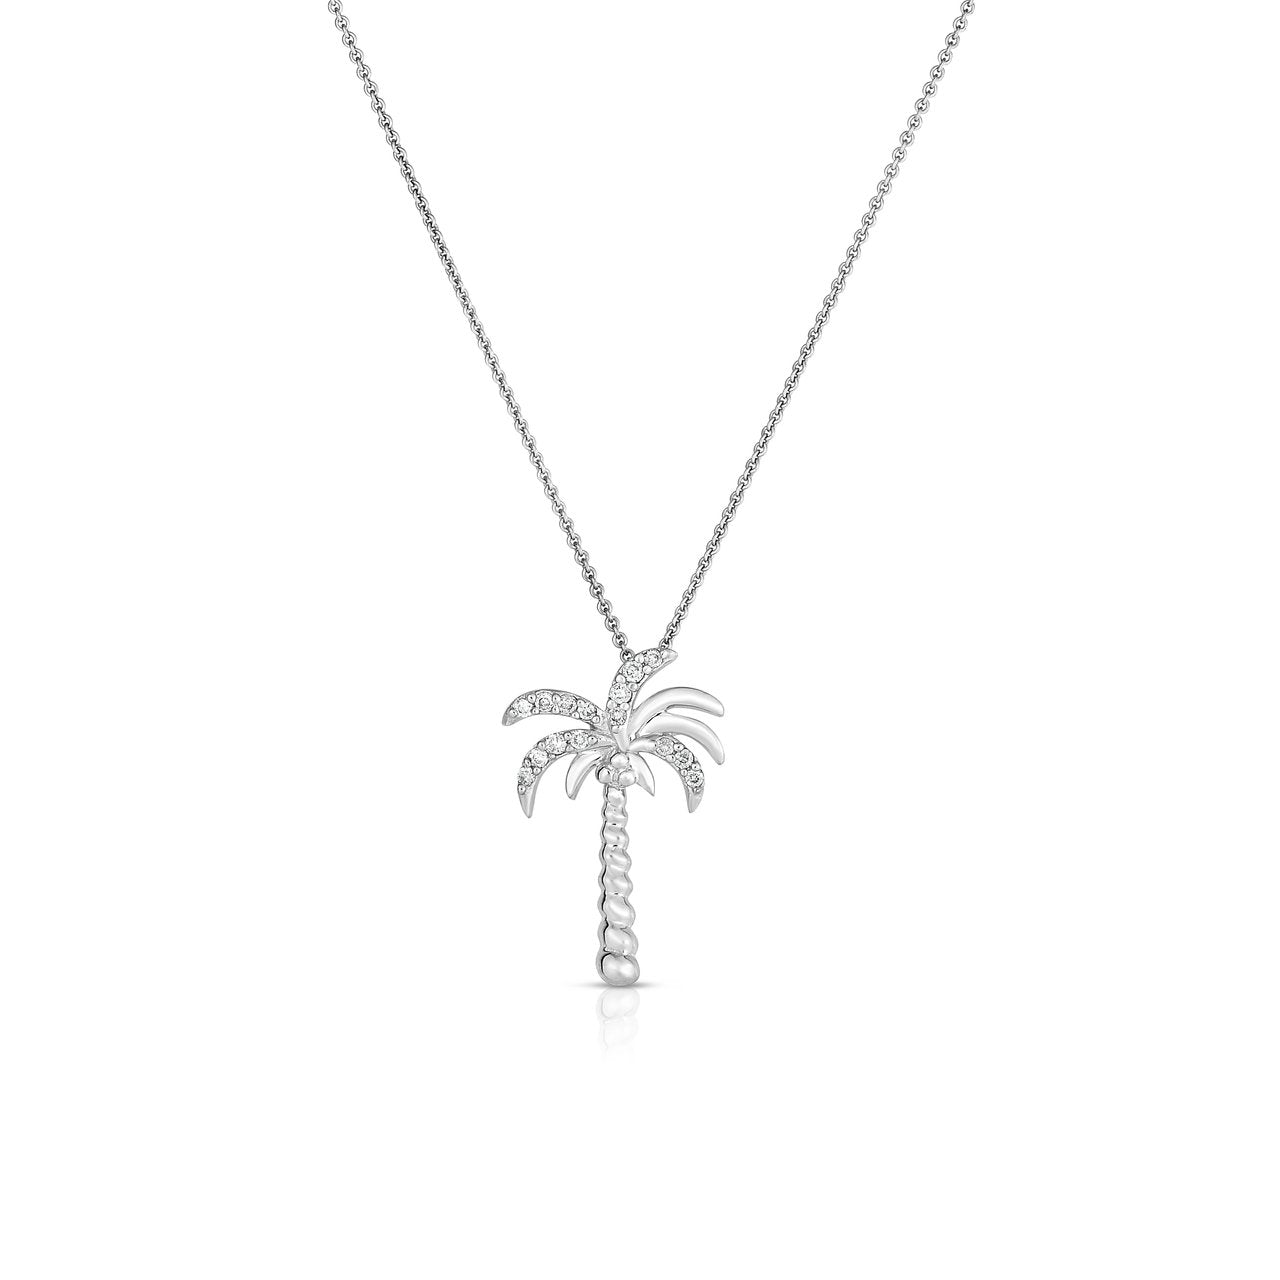 Sabel Collection 14K White Gold Diamond Palm Tree Necklace